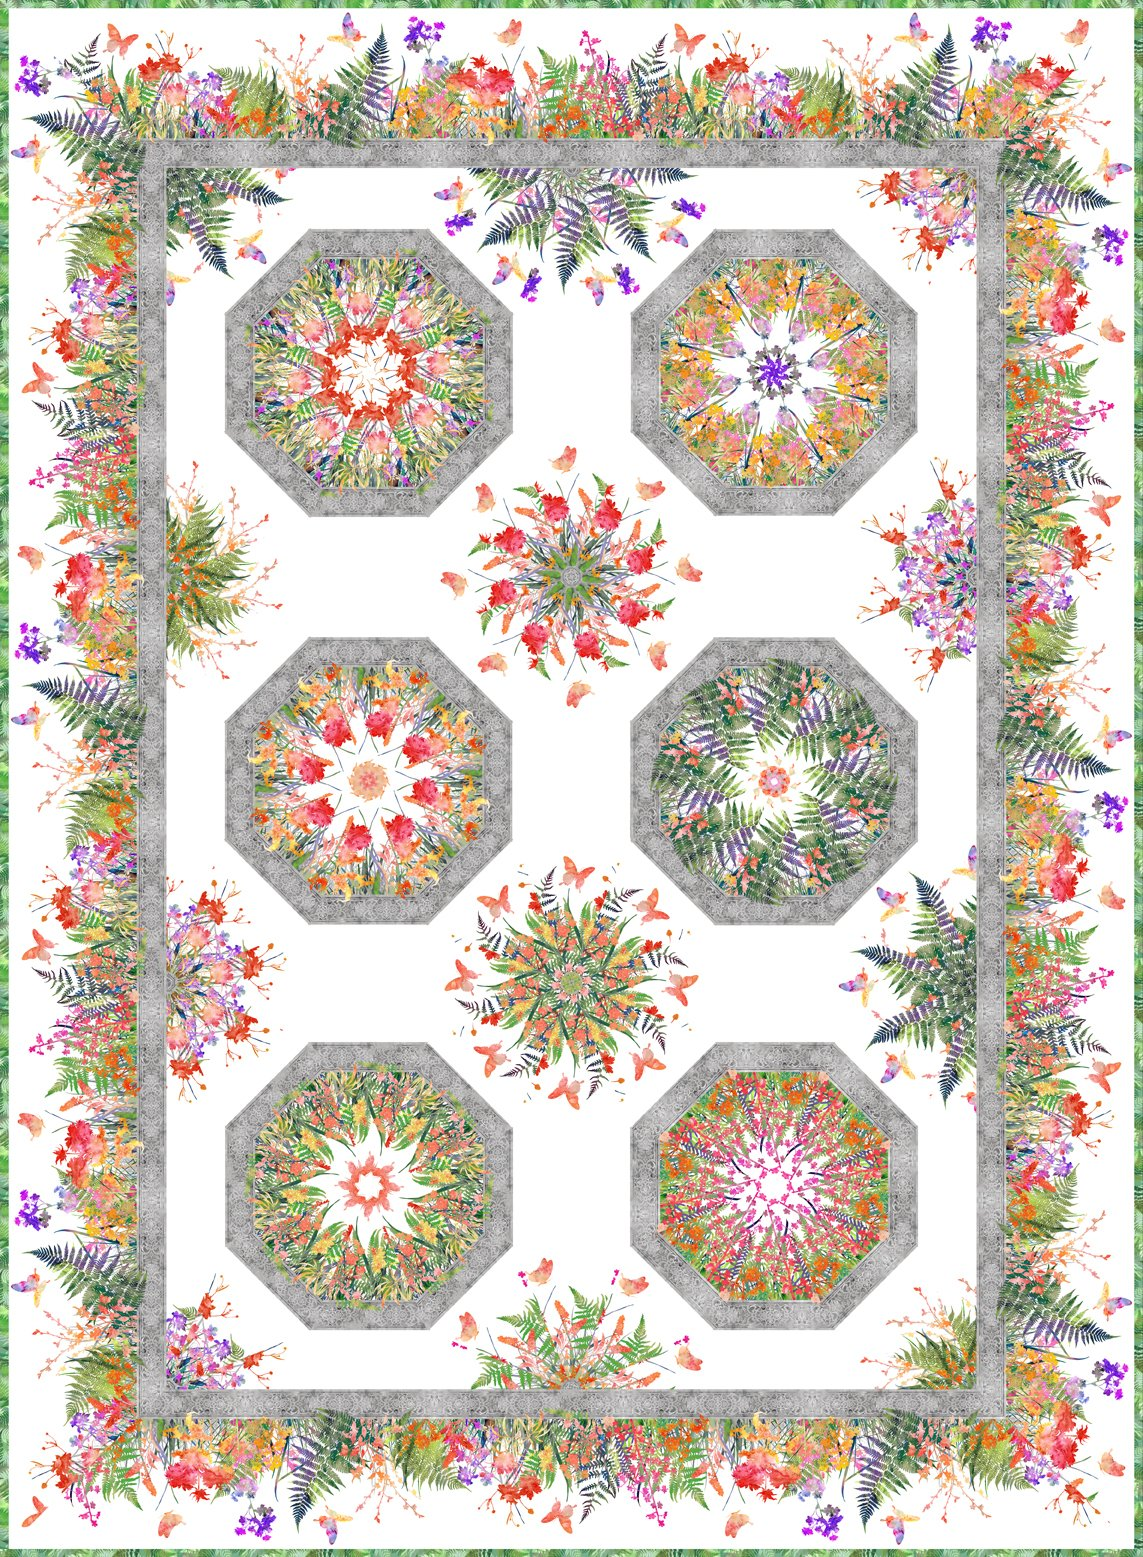 Garden of Dreams Kaleidoscope Quilt Pattern